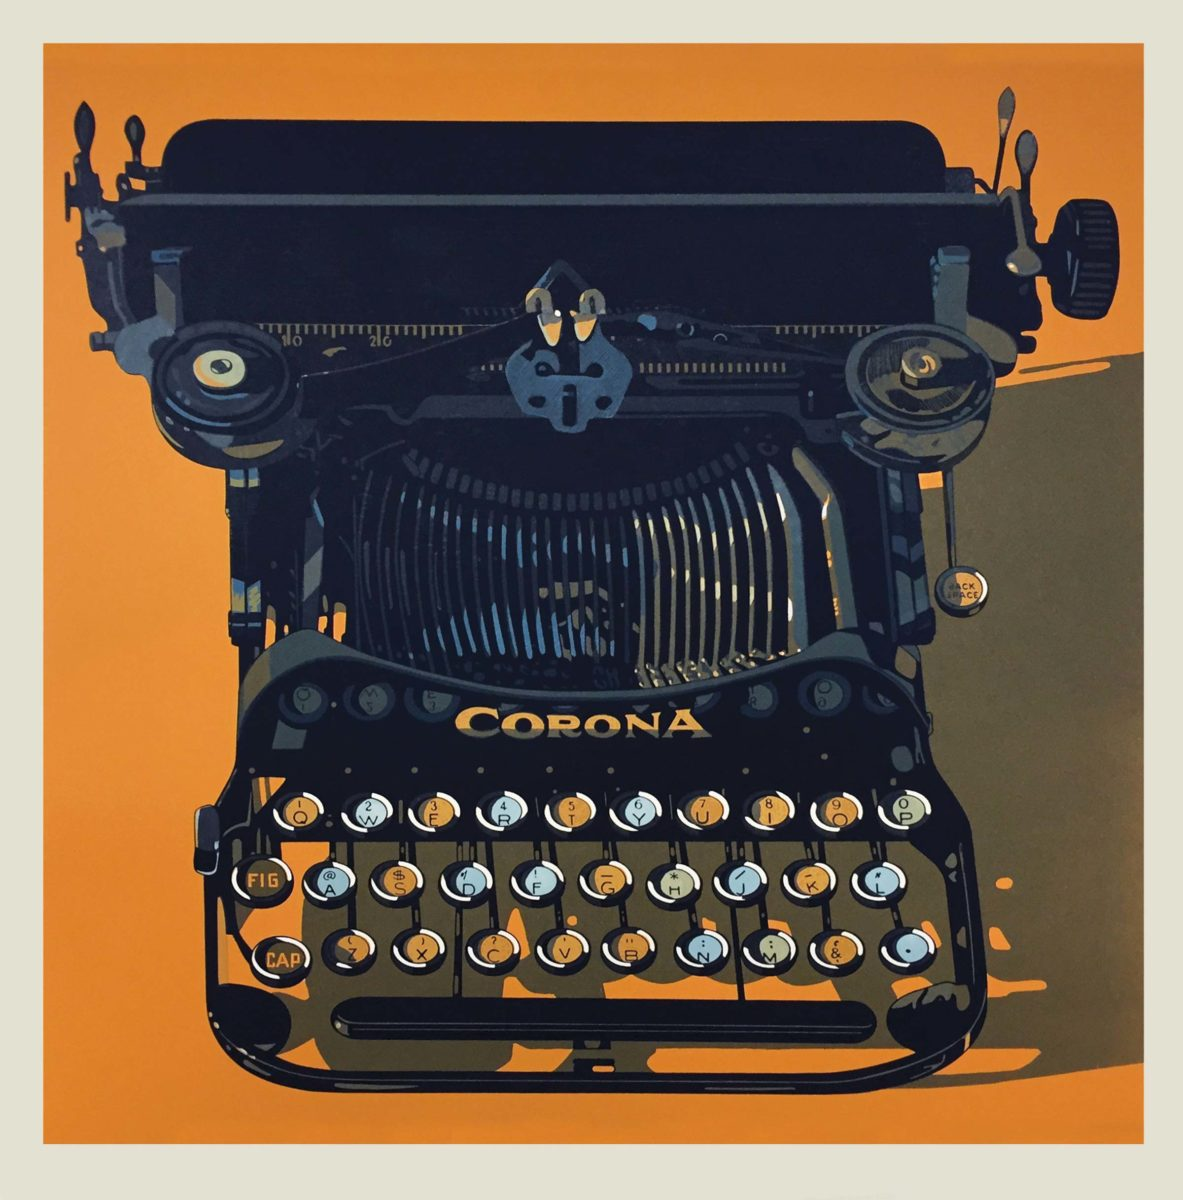 CORONA typewriter woodcut print by Robert Cottingham.